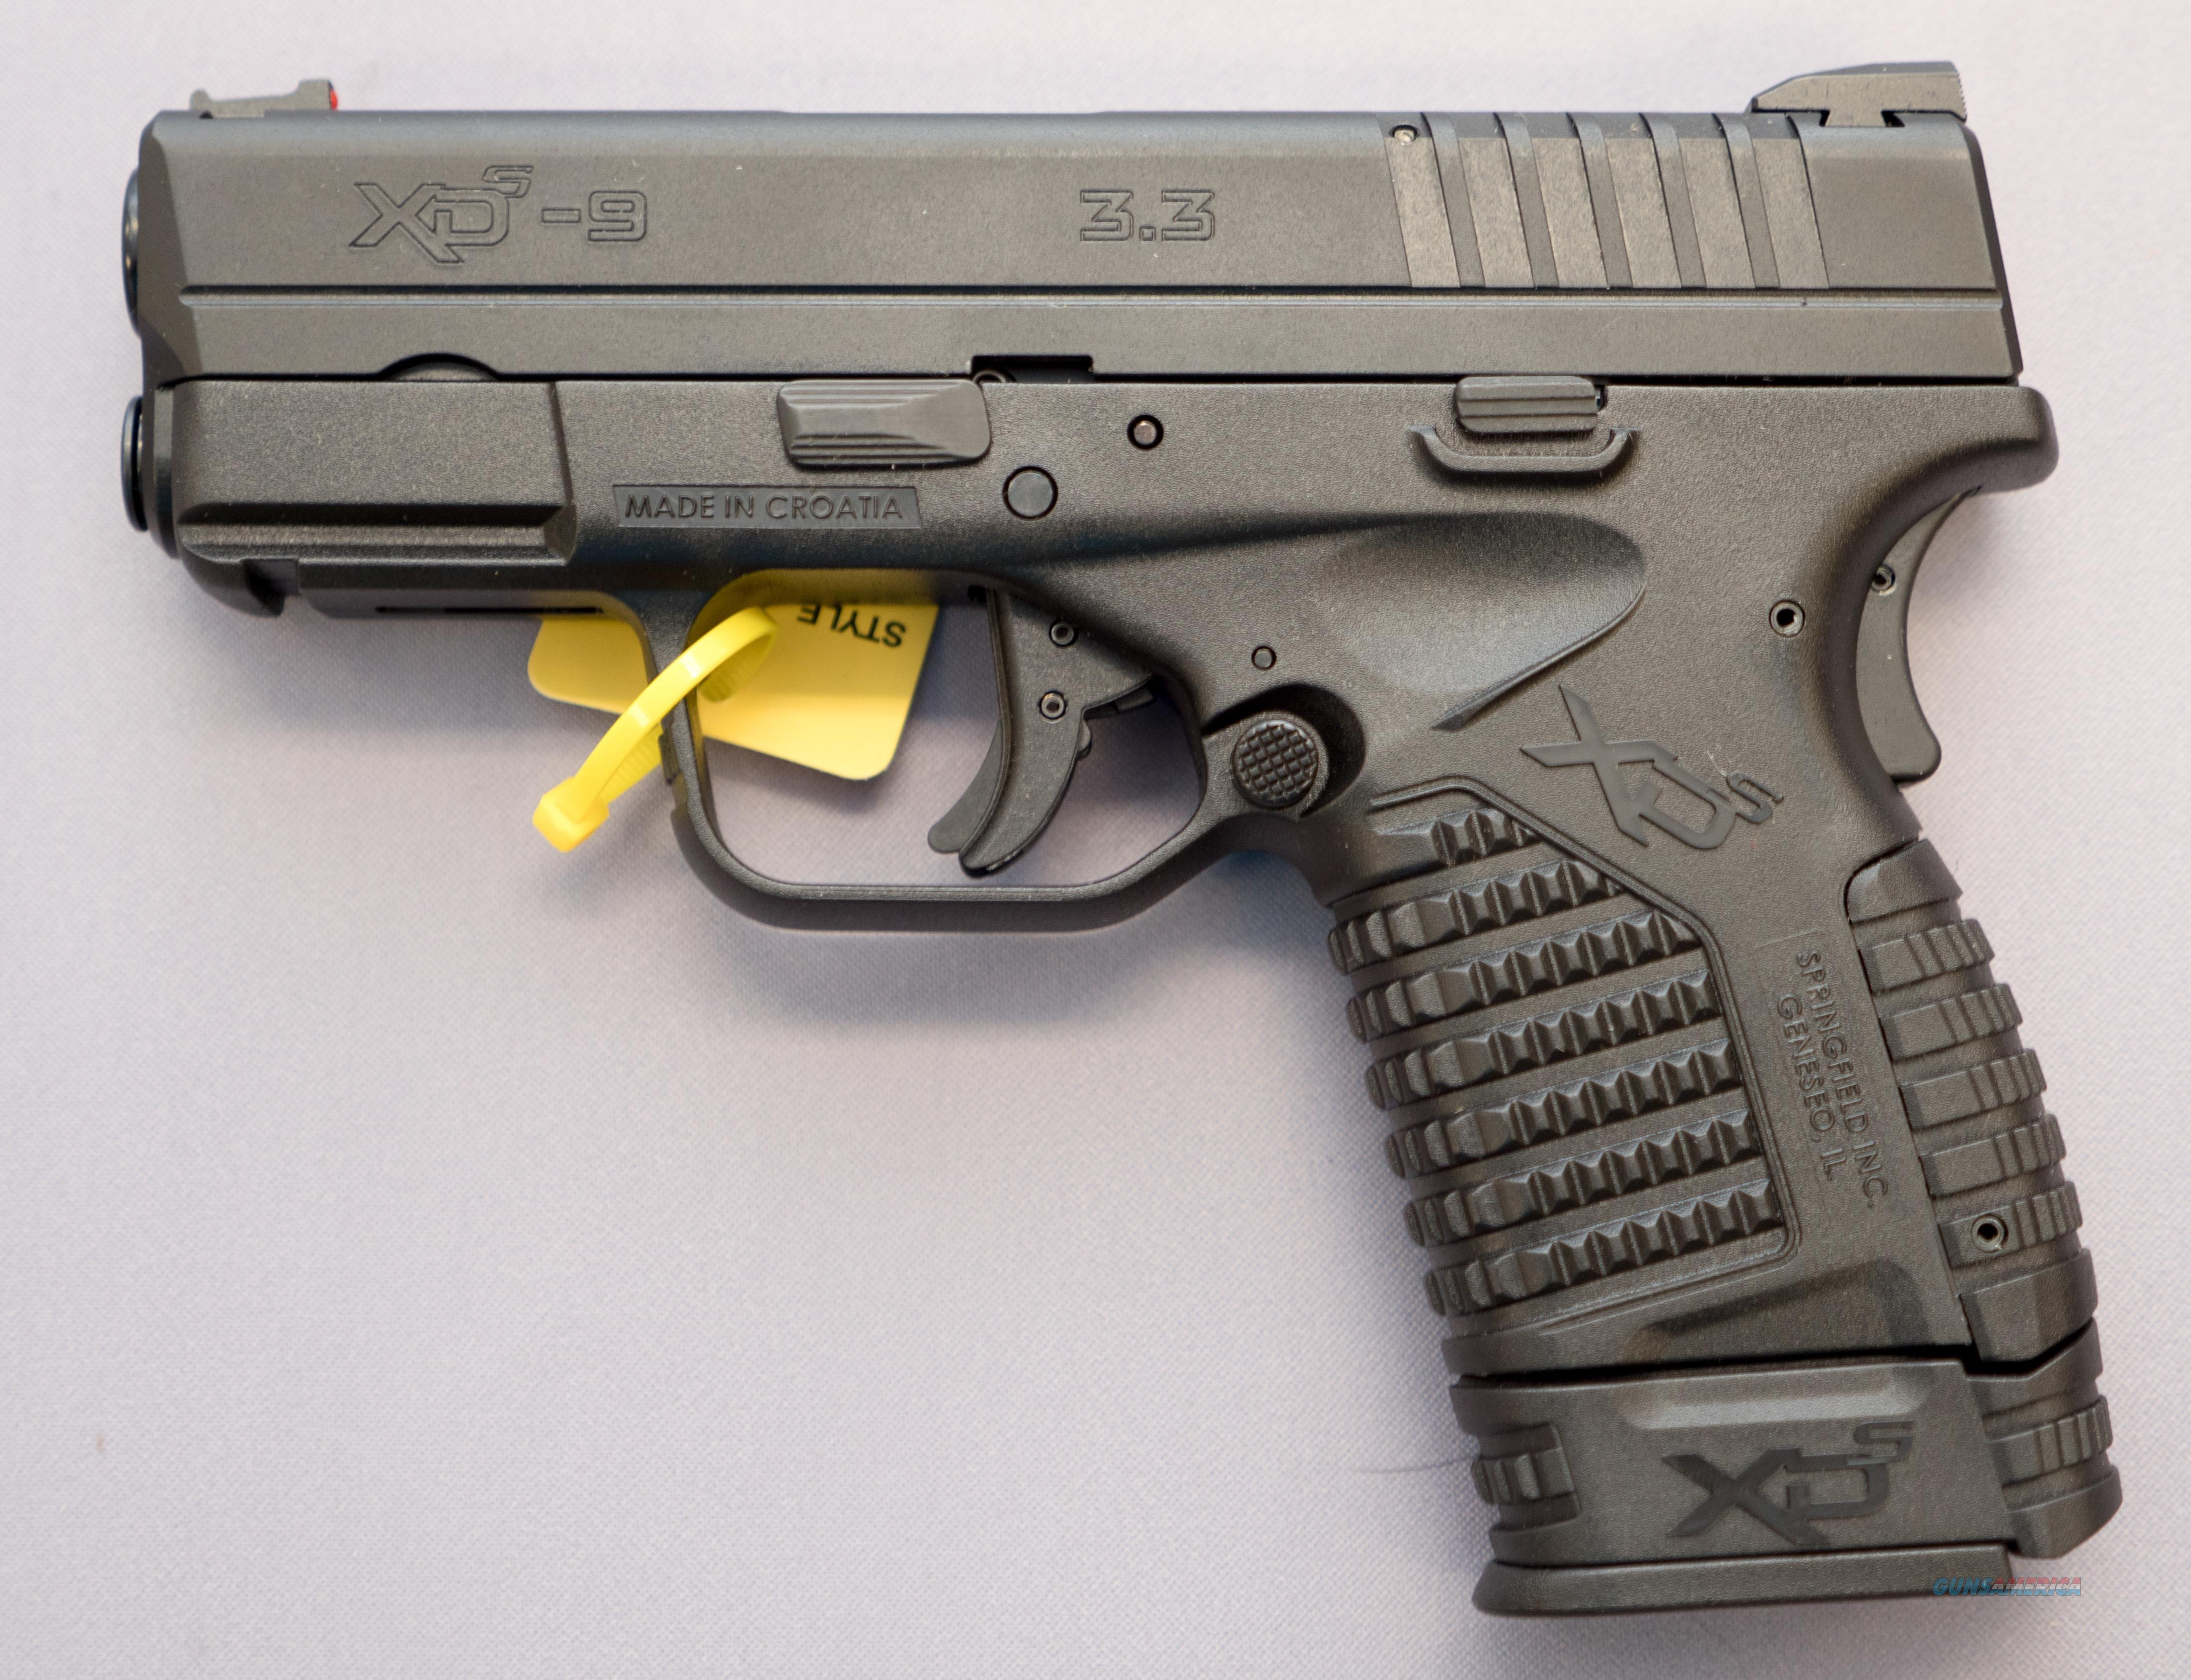 XDS-9 3.3 XDS9339BE 9mm 8+1 NO Credit Card Fees $15 Flat rate Shipping  Guns > Pistols > Springfield Armory Pistols > XD-S